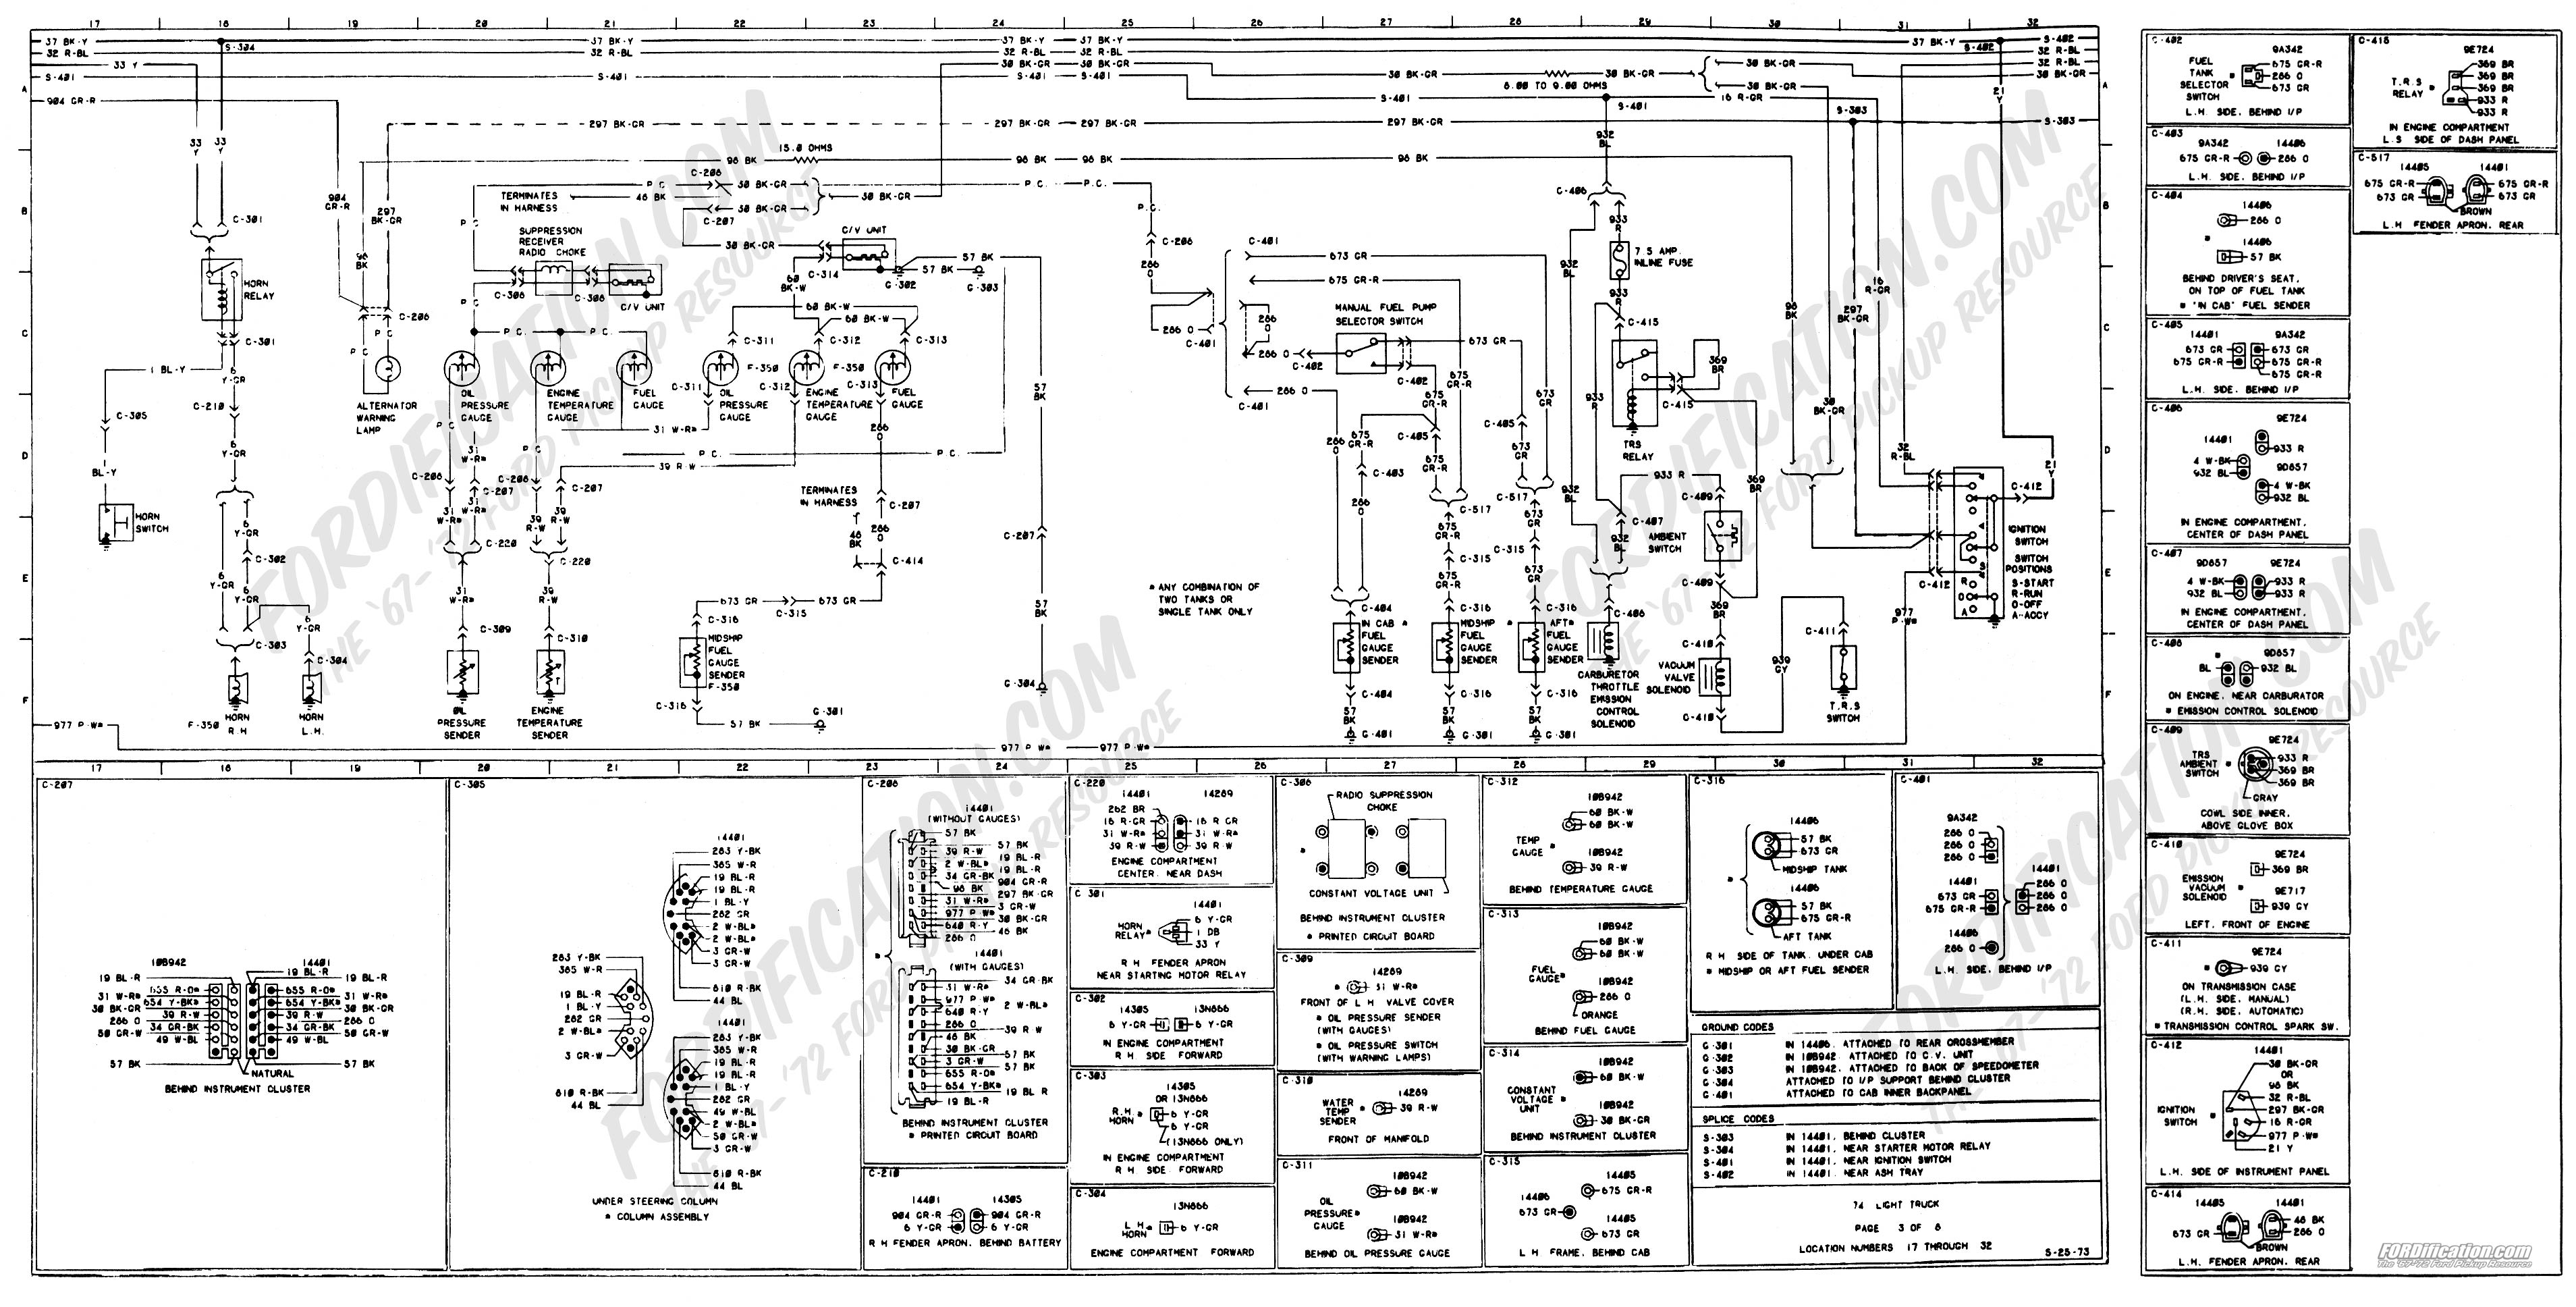 Wiring on fuse box diagram for 05 f350 super duty